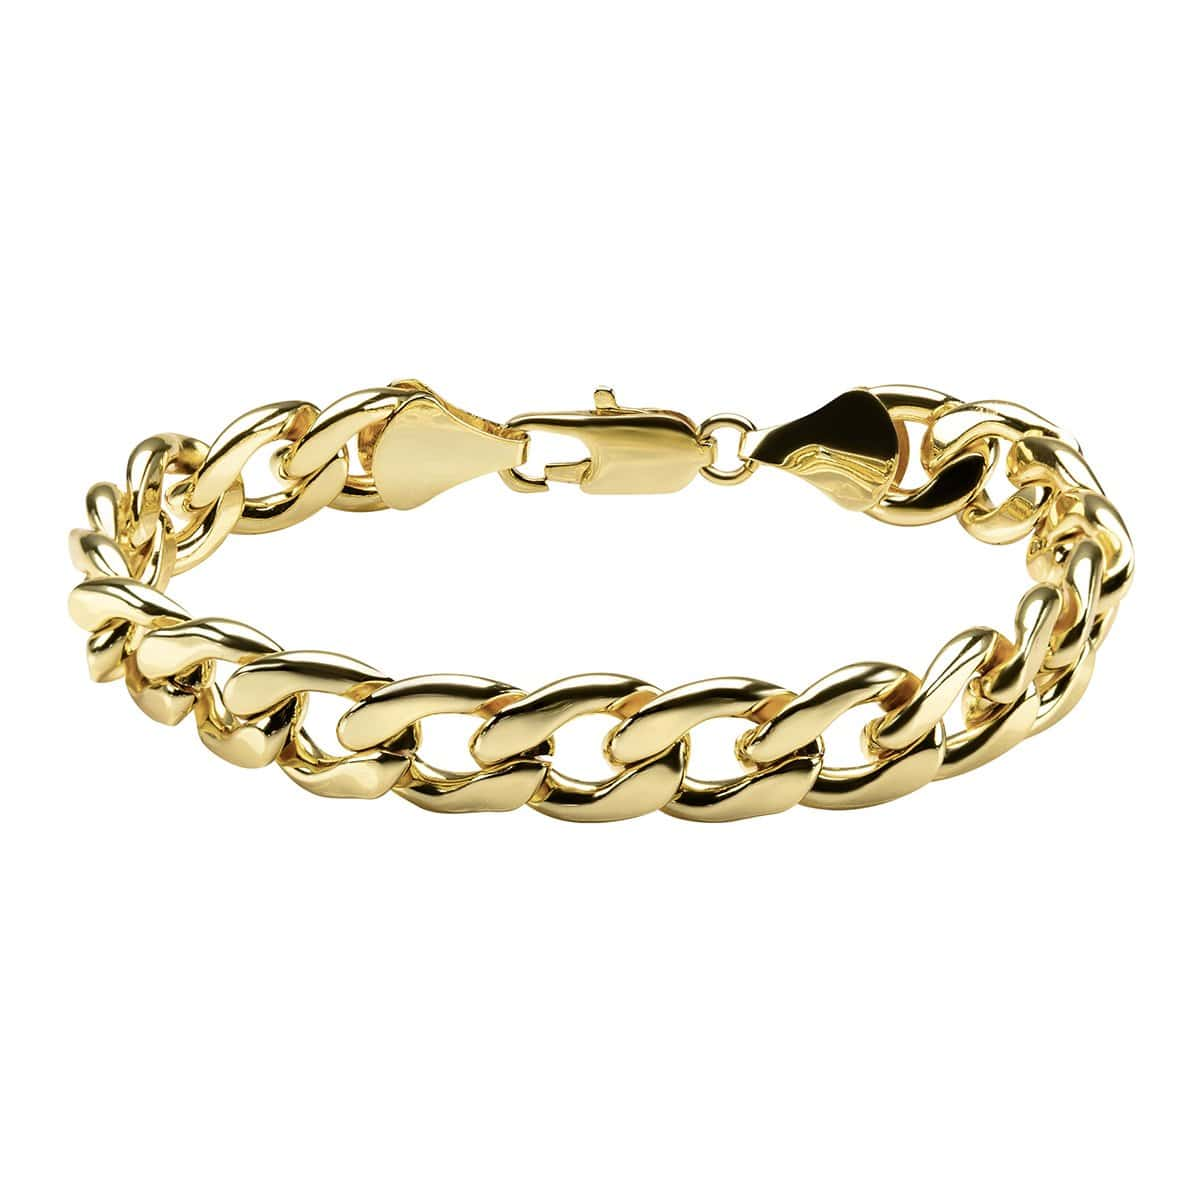 Gold Stainless Steel Diamond Cut Curb Chain Bracelet